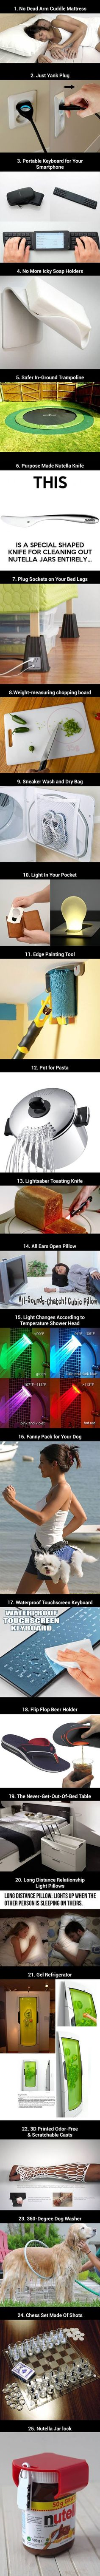 25 Just Really Cool Inventions(Diy Tech) (Cool Gadgets)